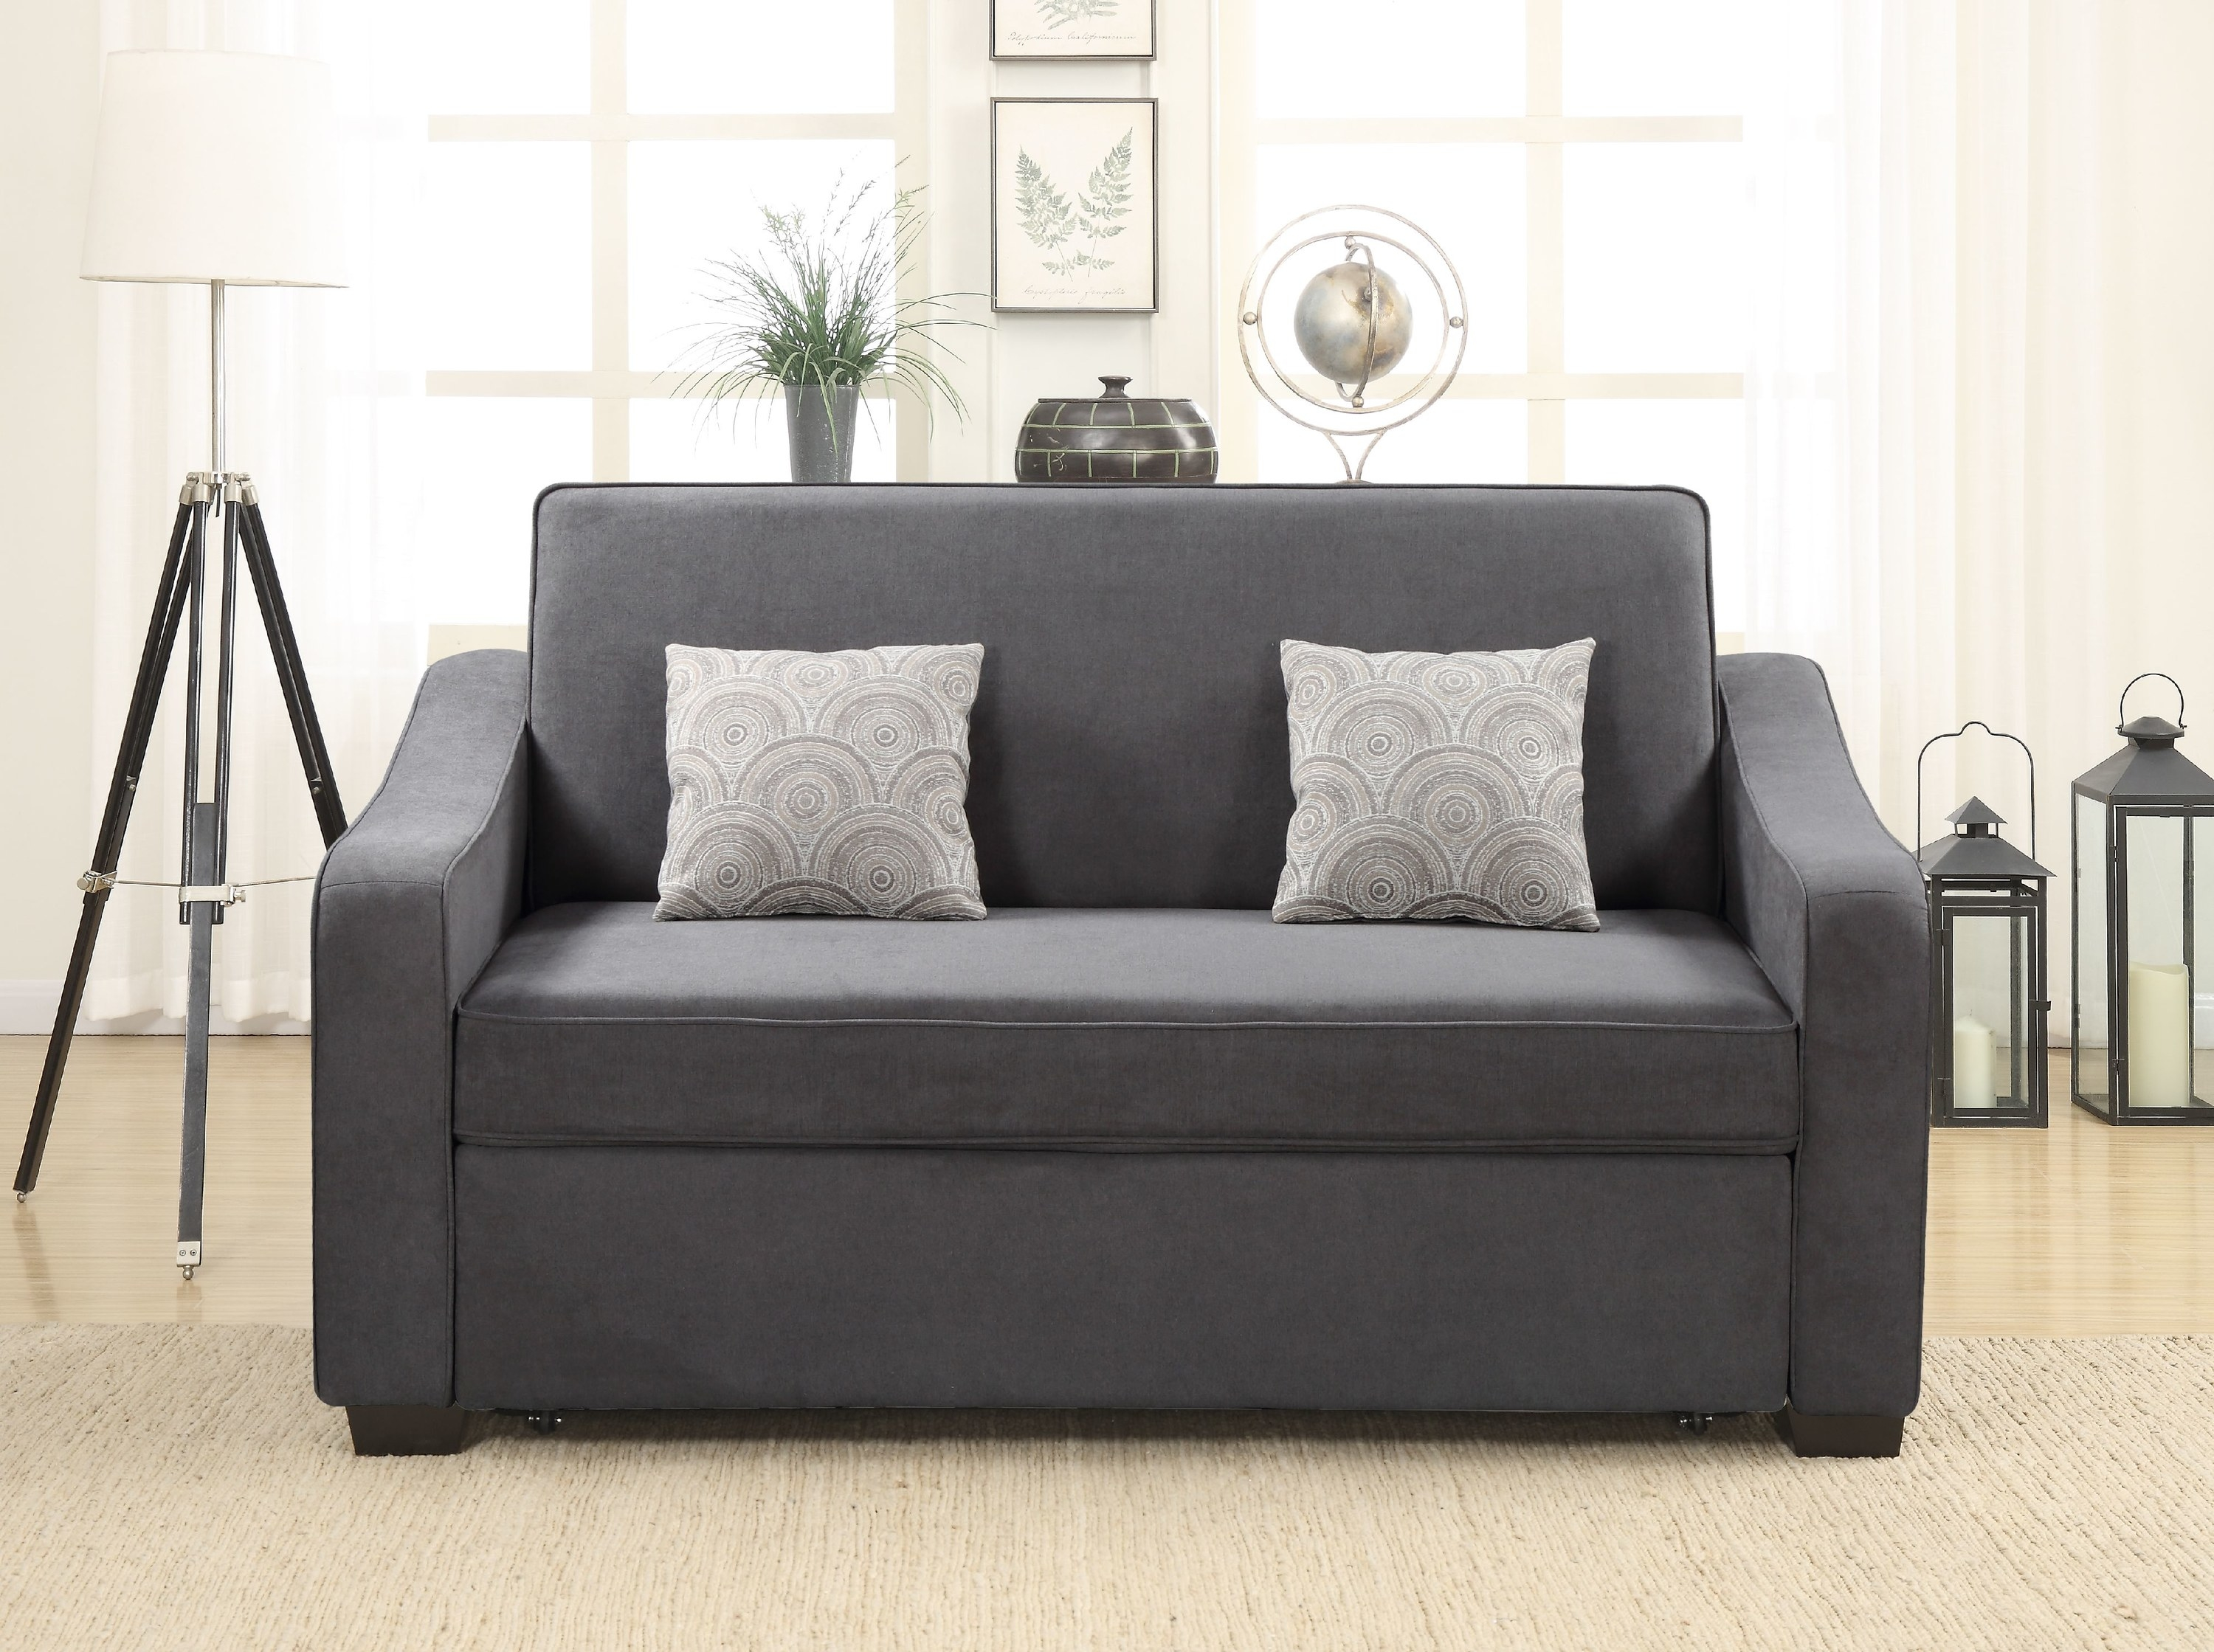 The compact gray sofa that can seat about two people